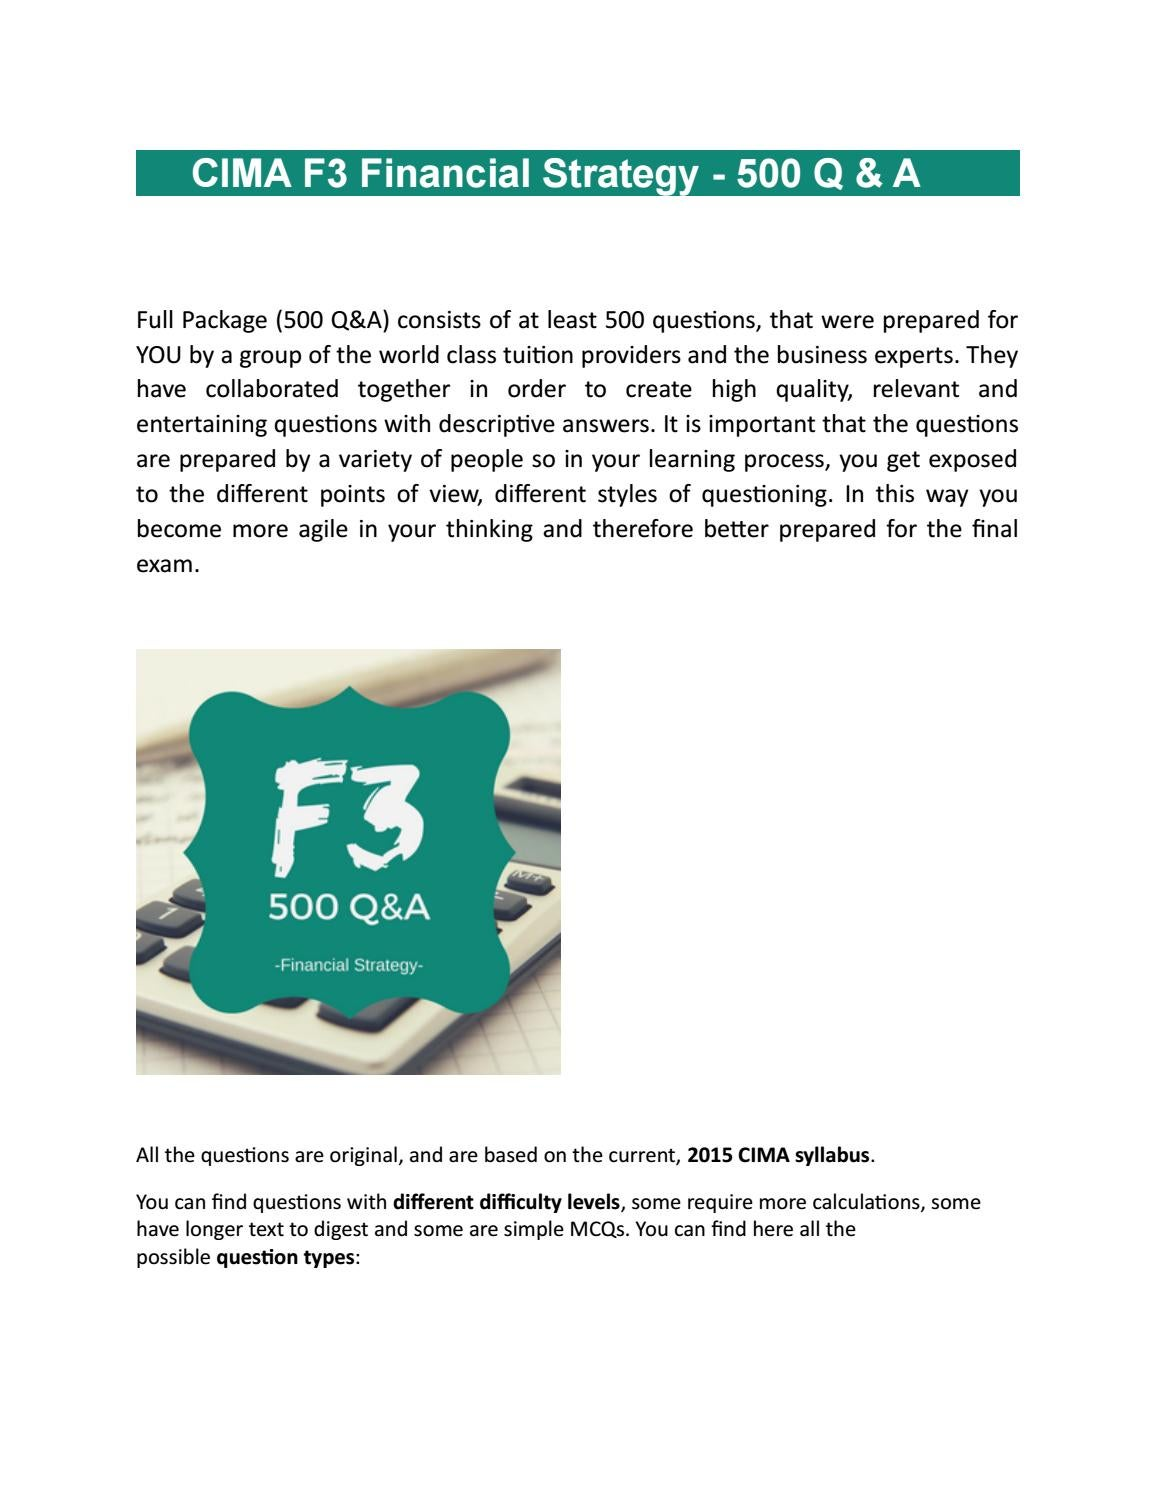 CIMA F3 Financial Strategy - 500 Q & A | Practice Tests